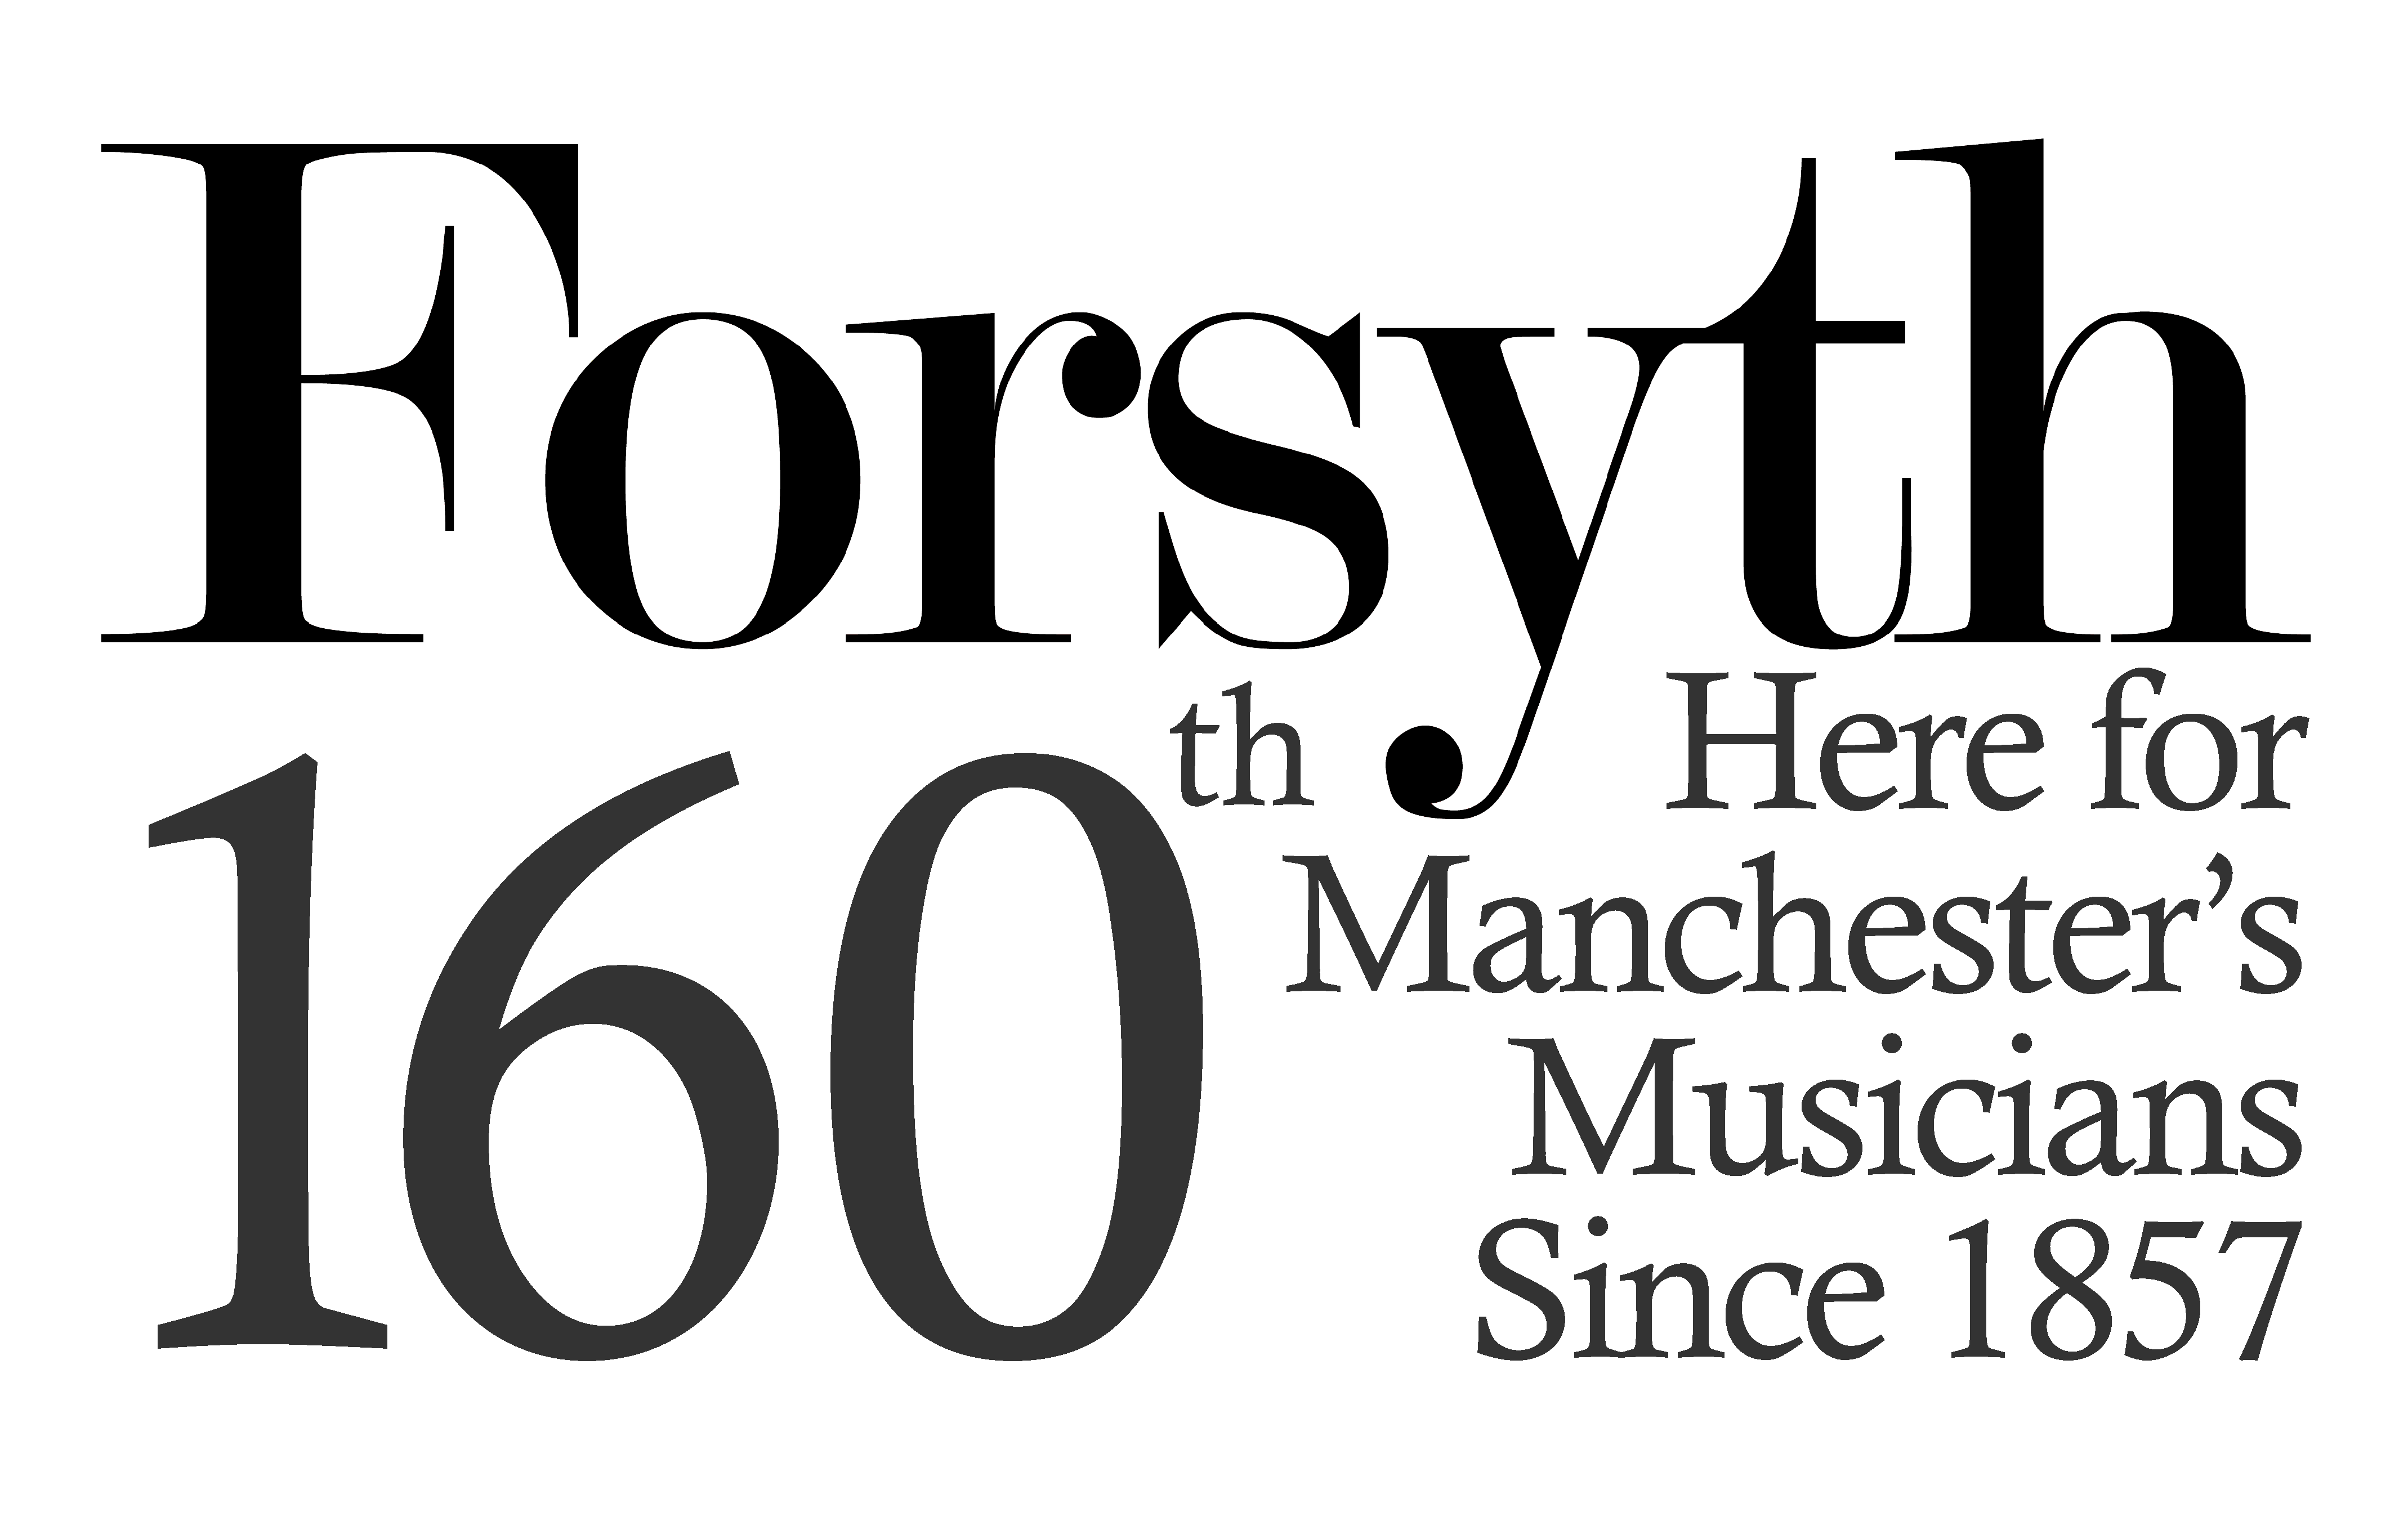 160 Years Serving the Musicians of Manchester and Beyond!